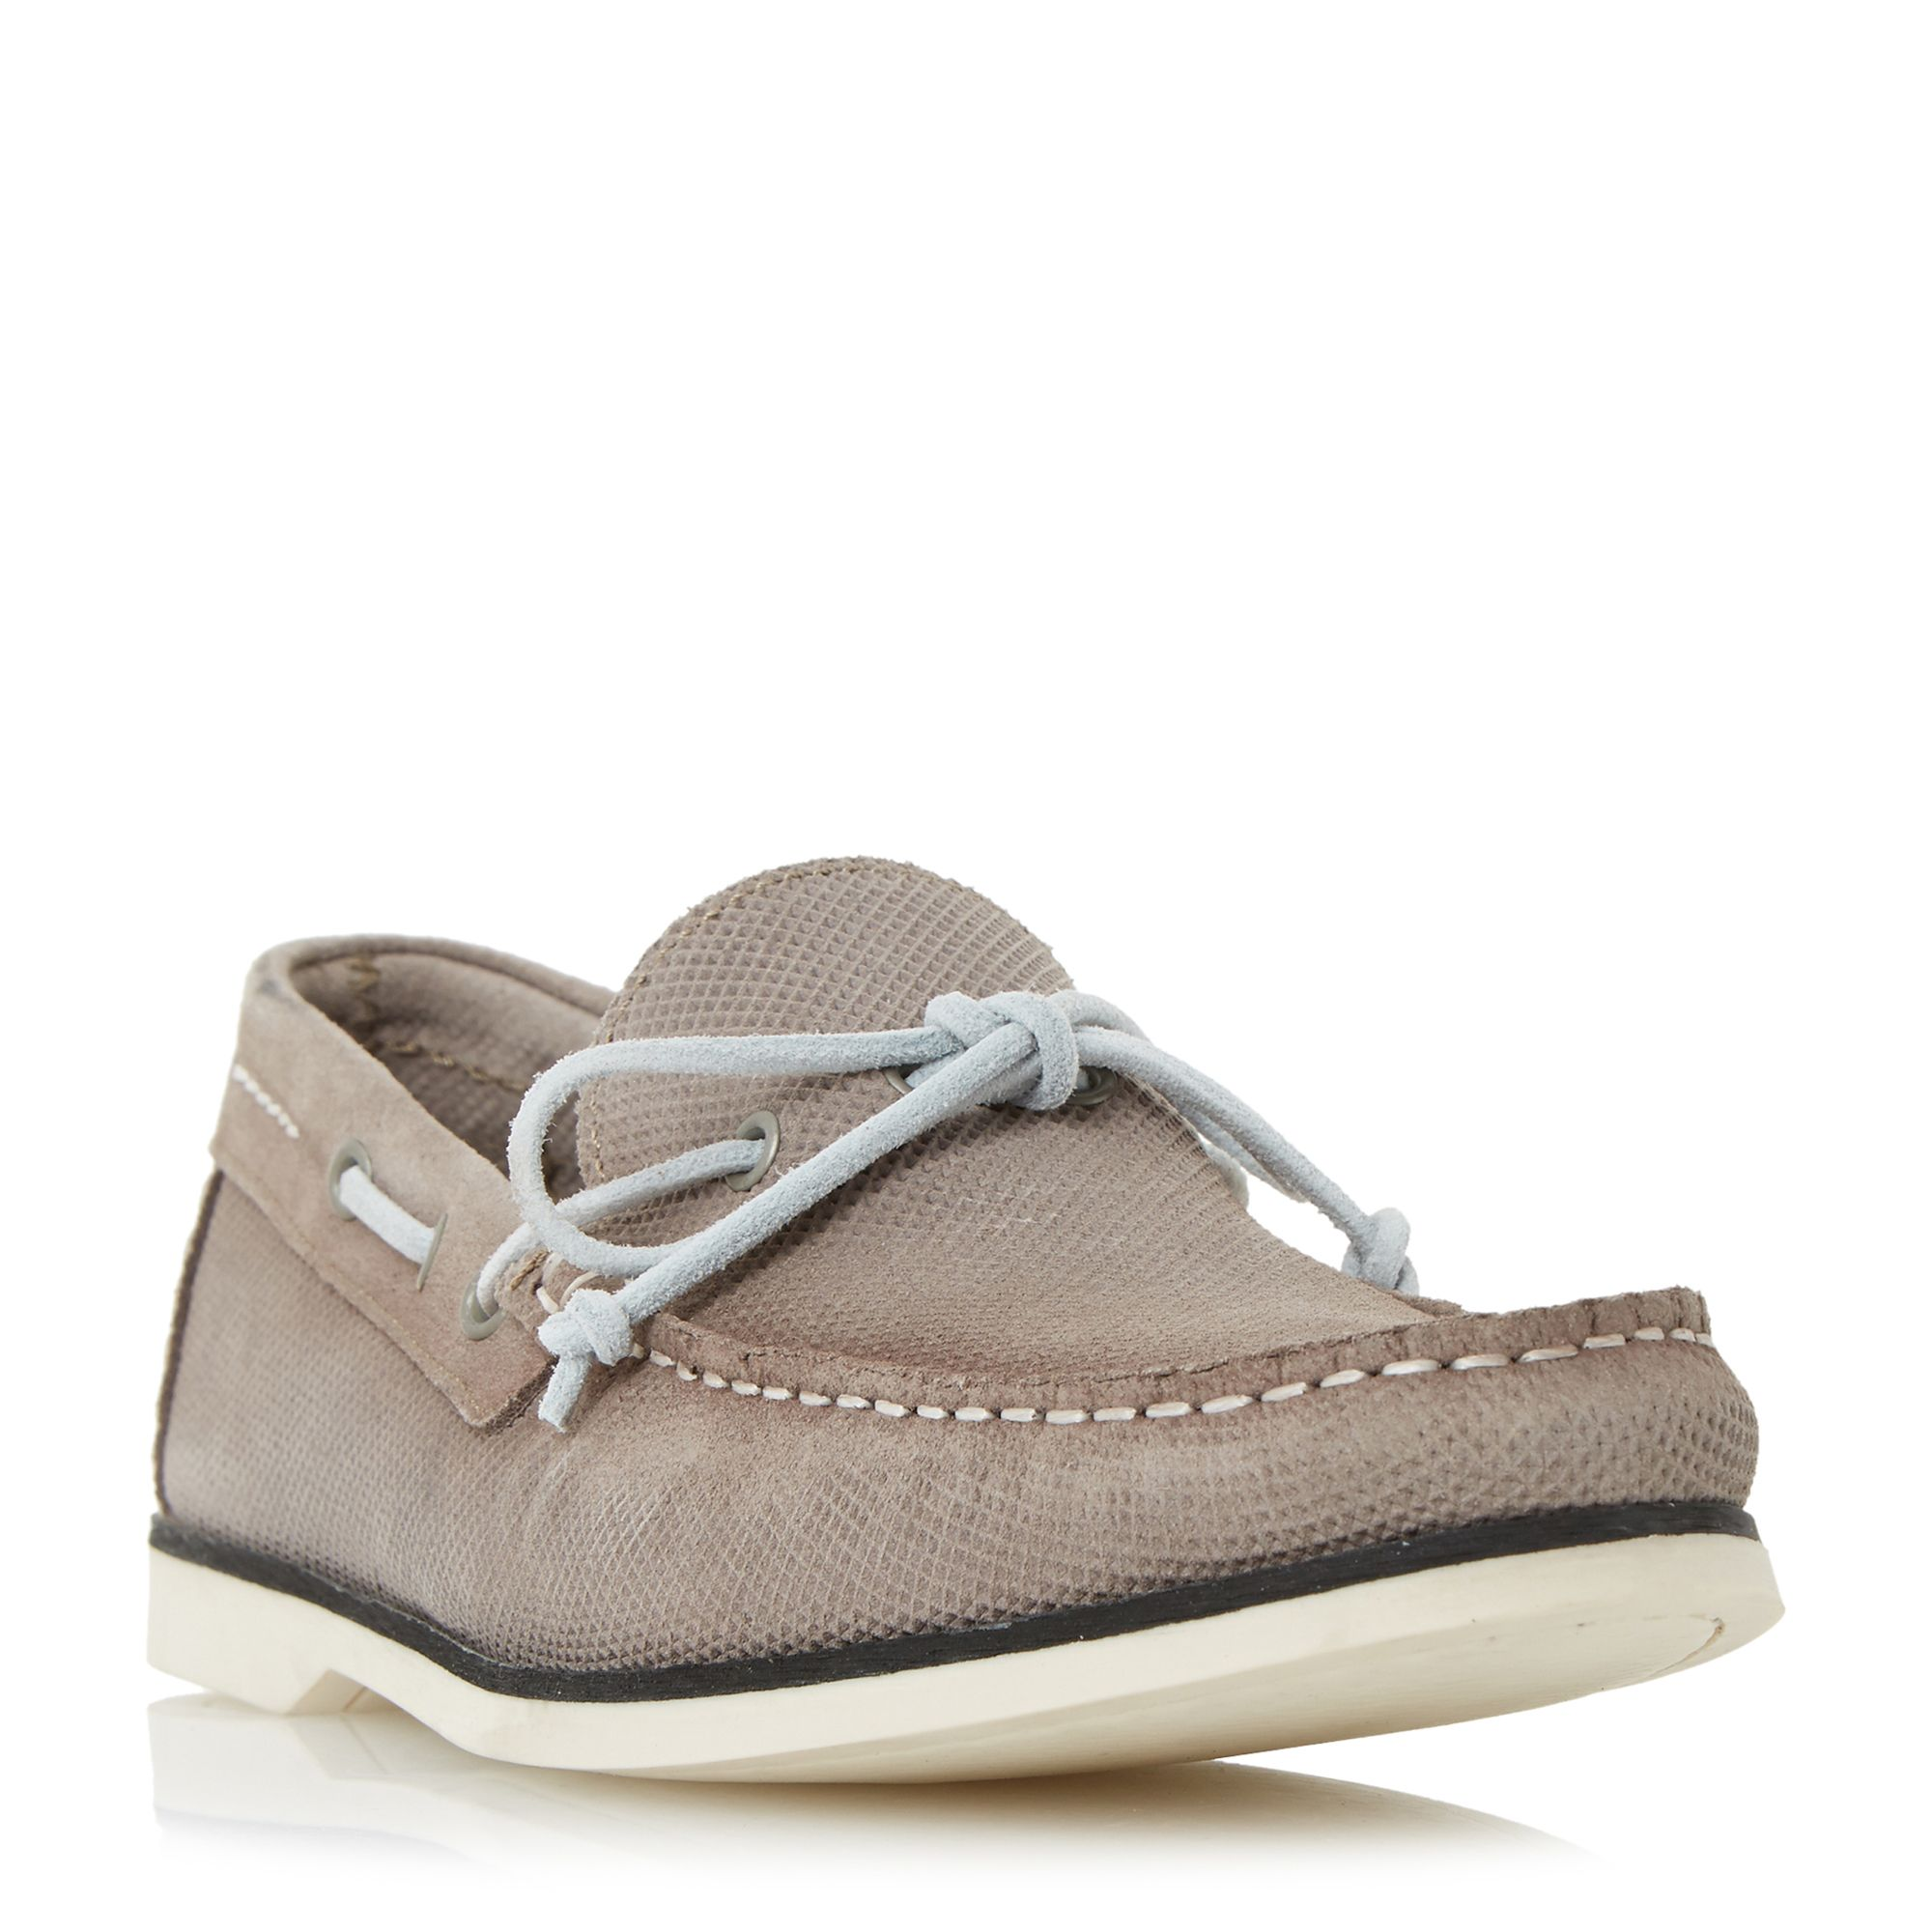 Bertie Bubble textured suede boat shoes, Taupe